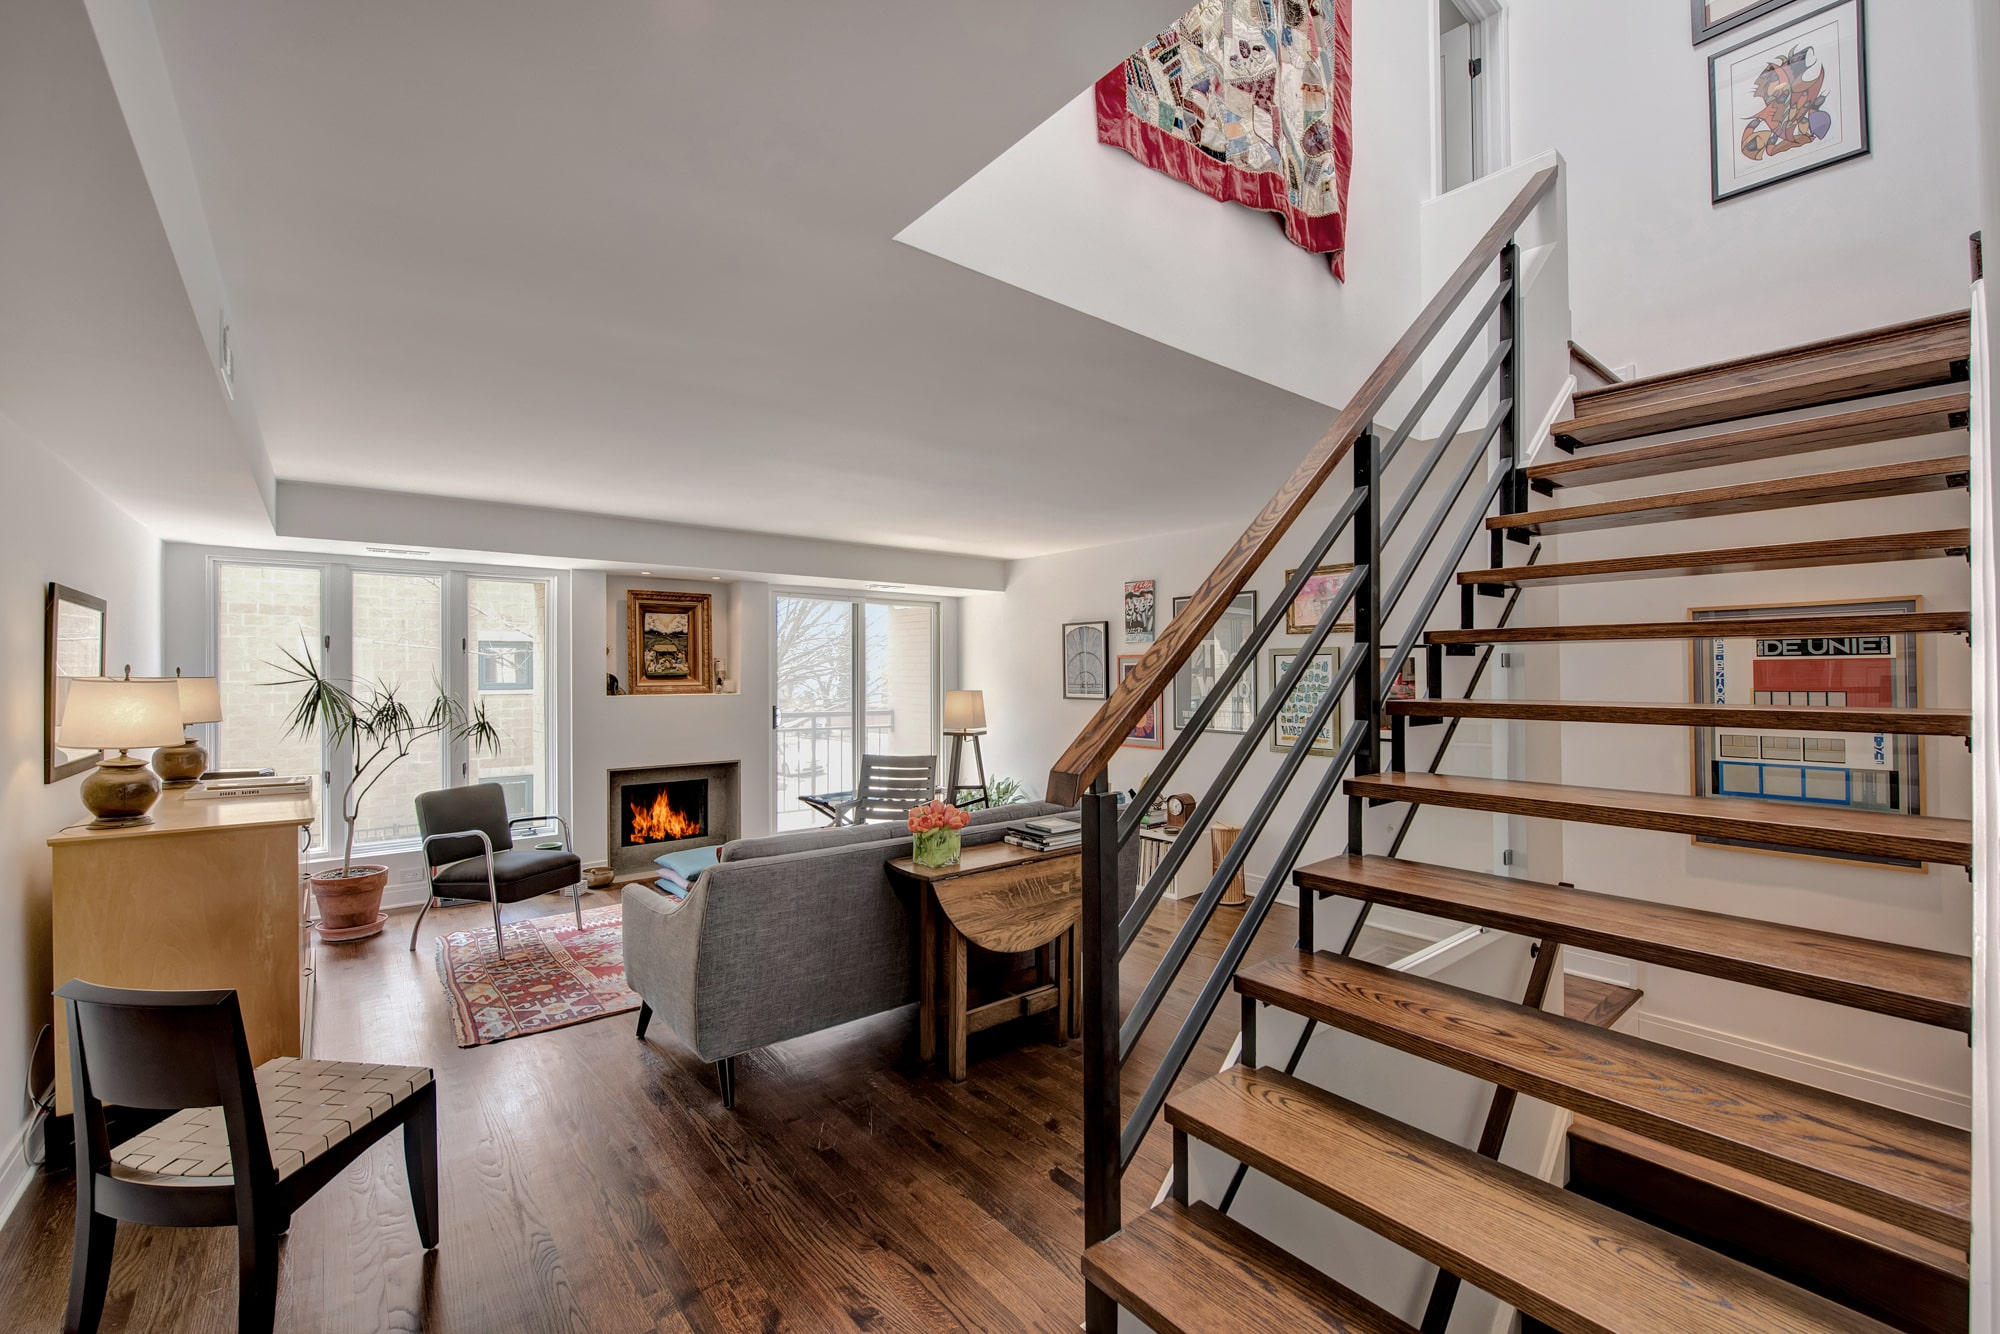 CHICAGO TOWNHOME - Full renovation of 2100 sq. ft. townhome in Old Town neighborhood